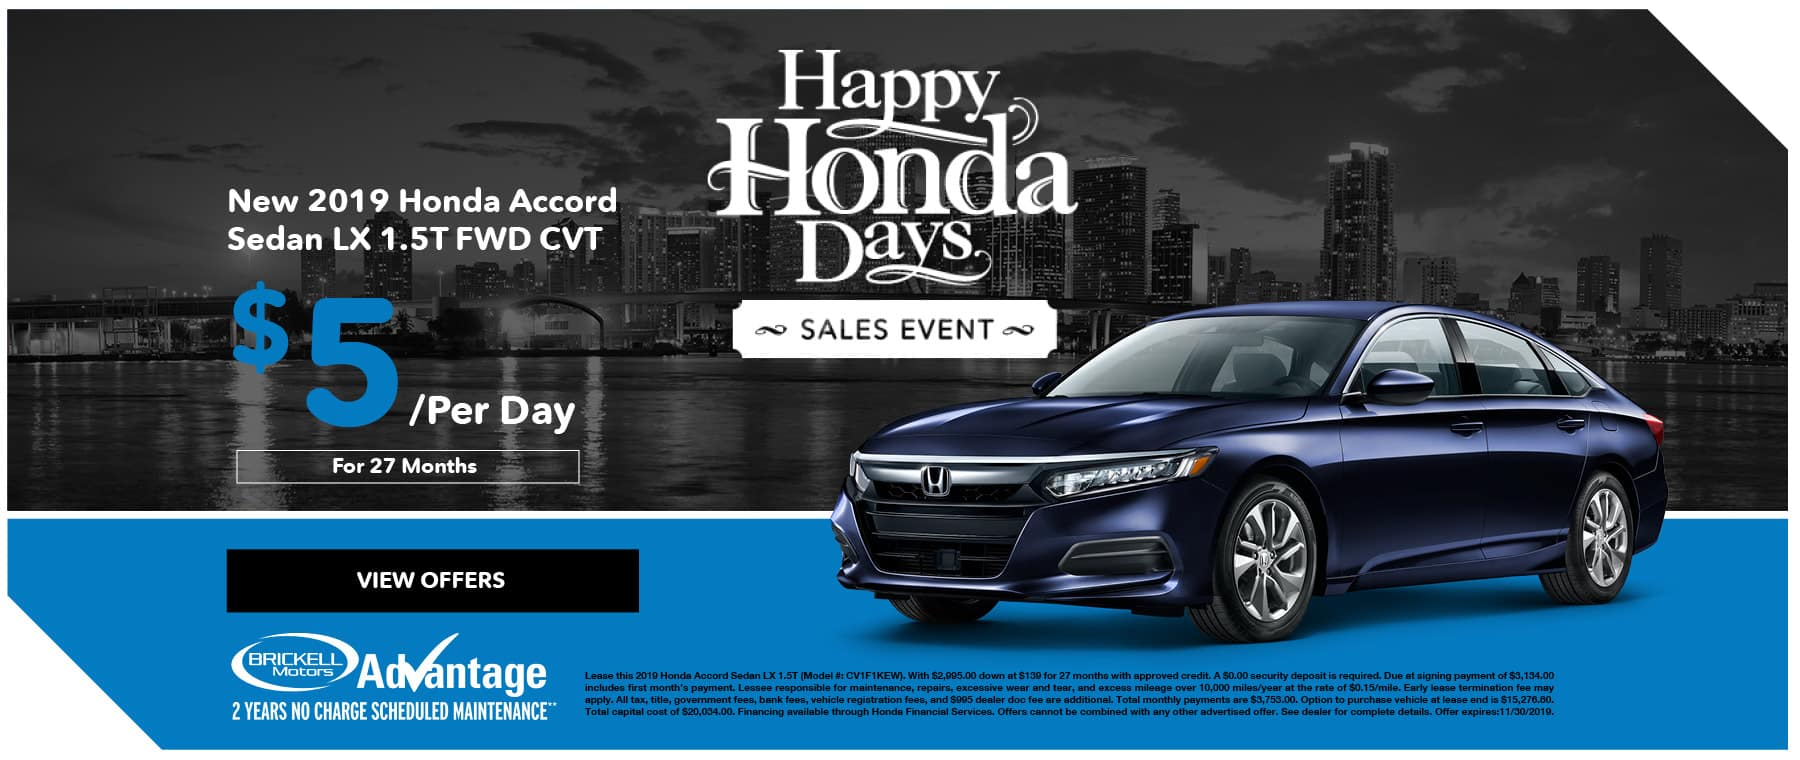 Brickell Honda Accord Happy Honda Days